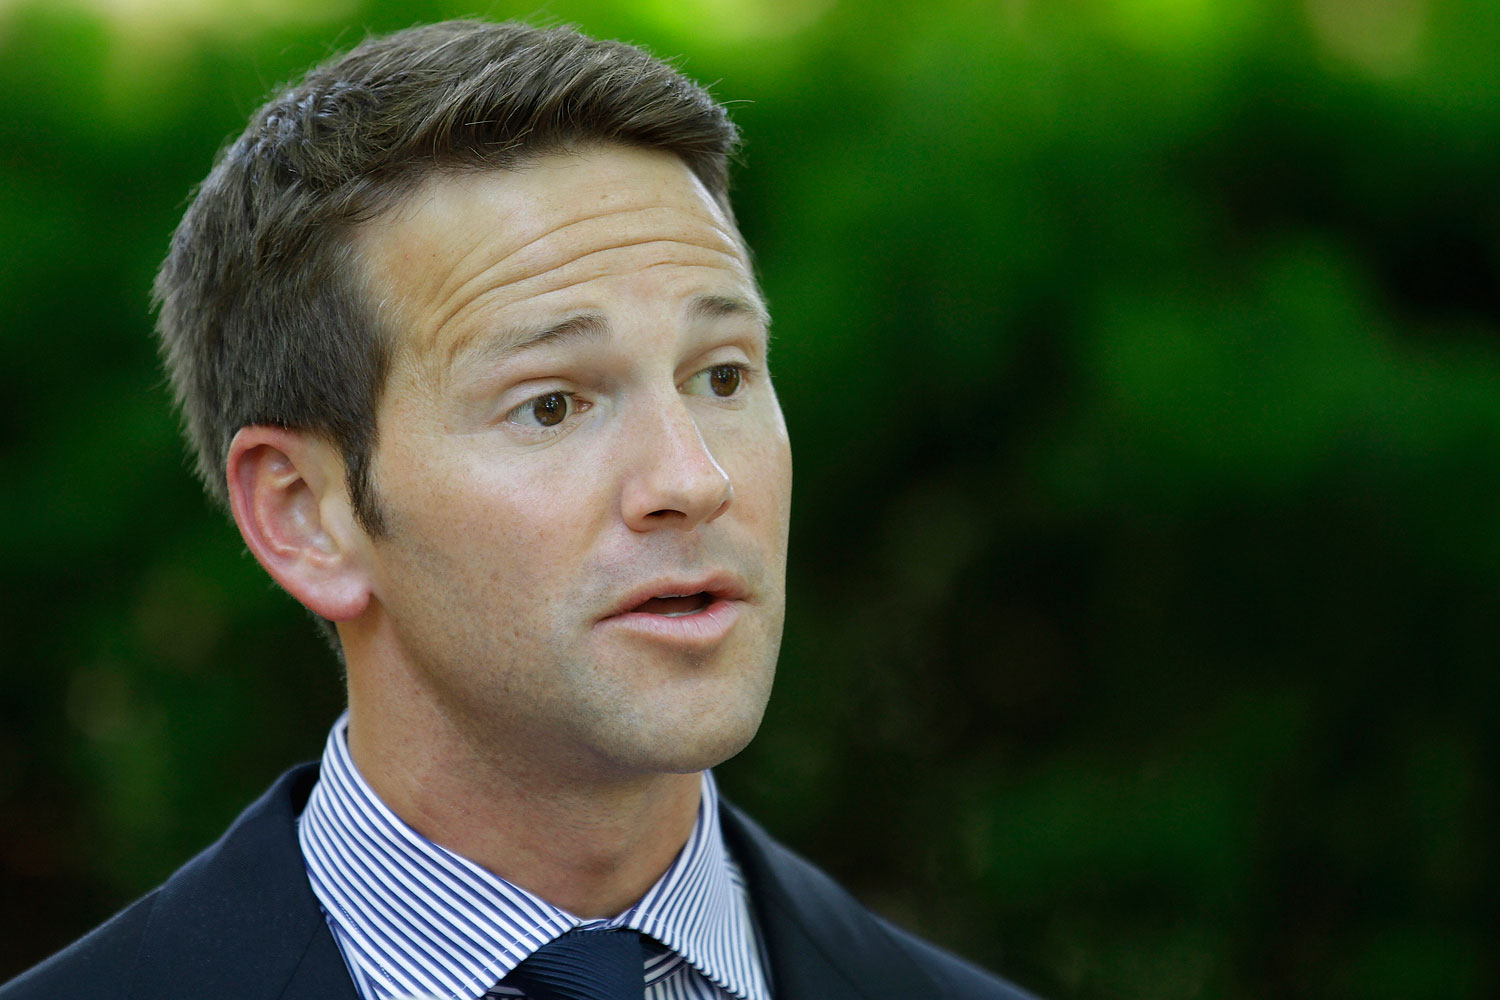 Rep. Aaron Schock, R-Ill, is seen speaking at the Illinois Governor's Mansion Thursday, June 14, 2012  Springfield, Ill.